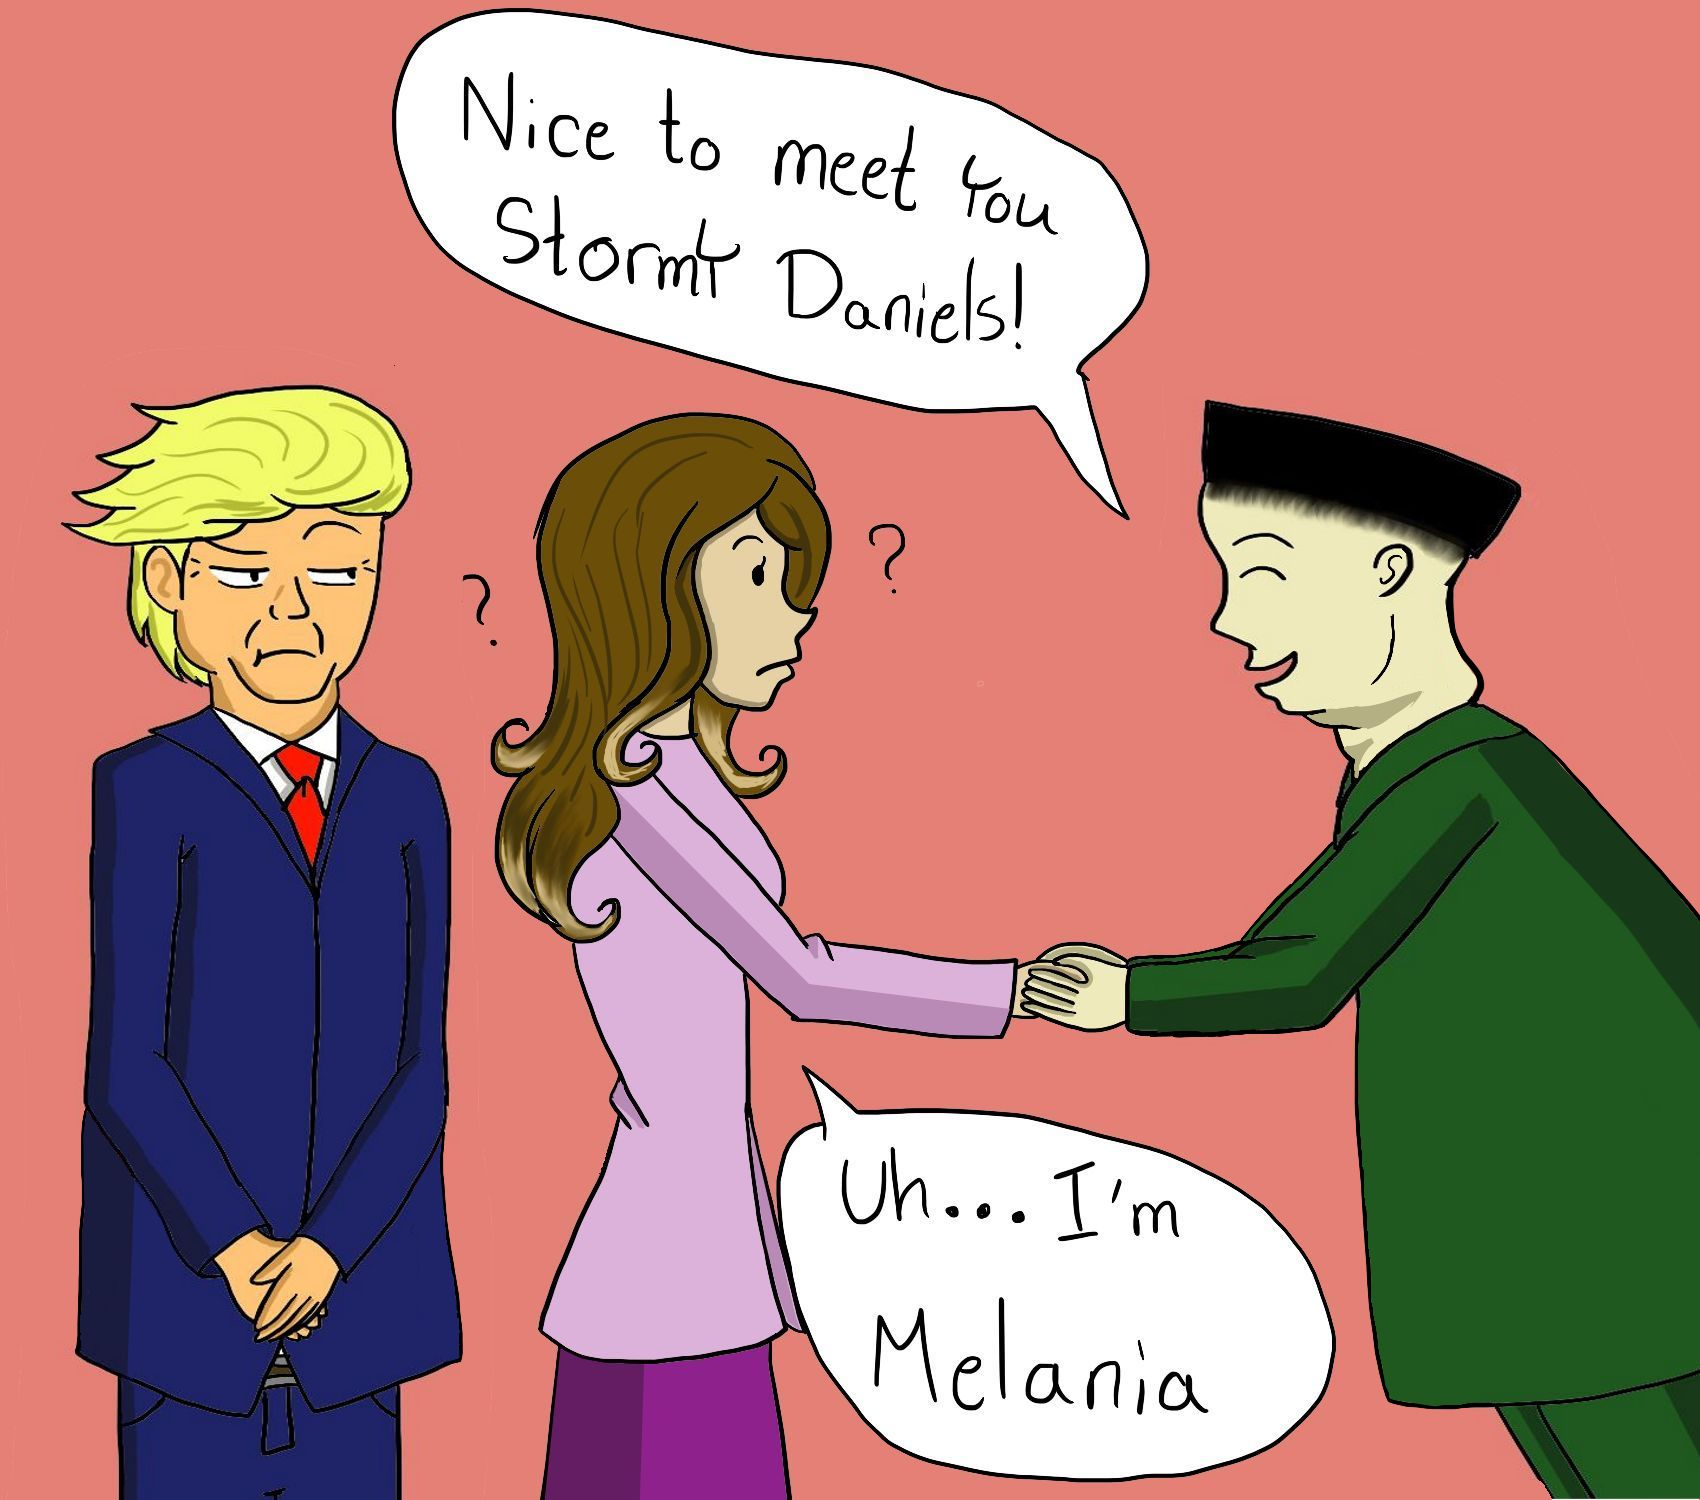 "Comic of President Trump and First Lady Melania Trump meeting North Korean leader Kim Jong-un who says ""Pleased to meet you Stormy Daniels"" to the First Lady."